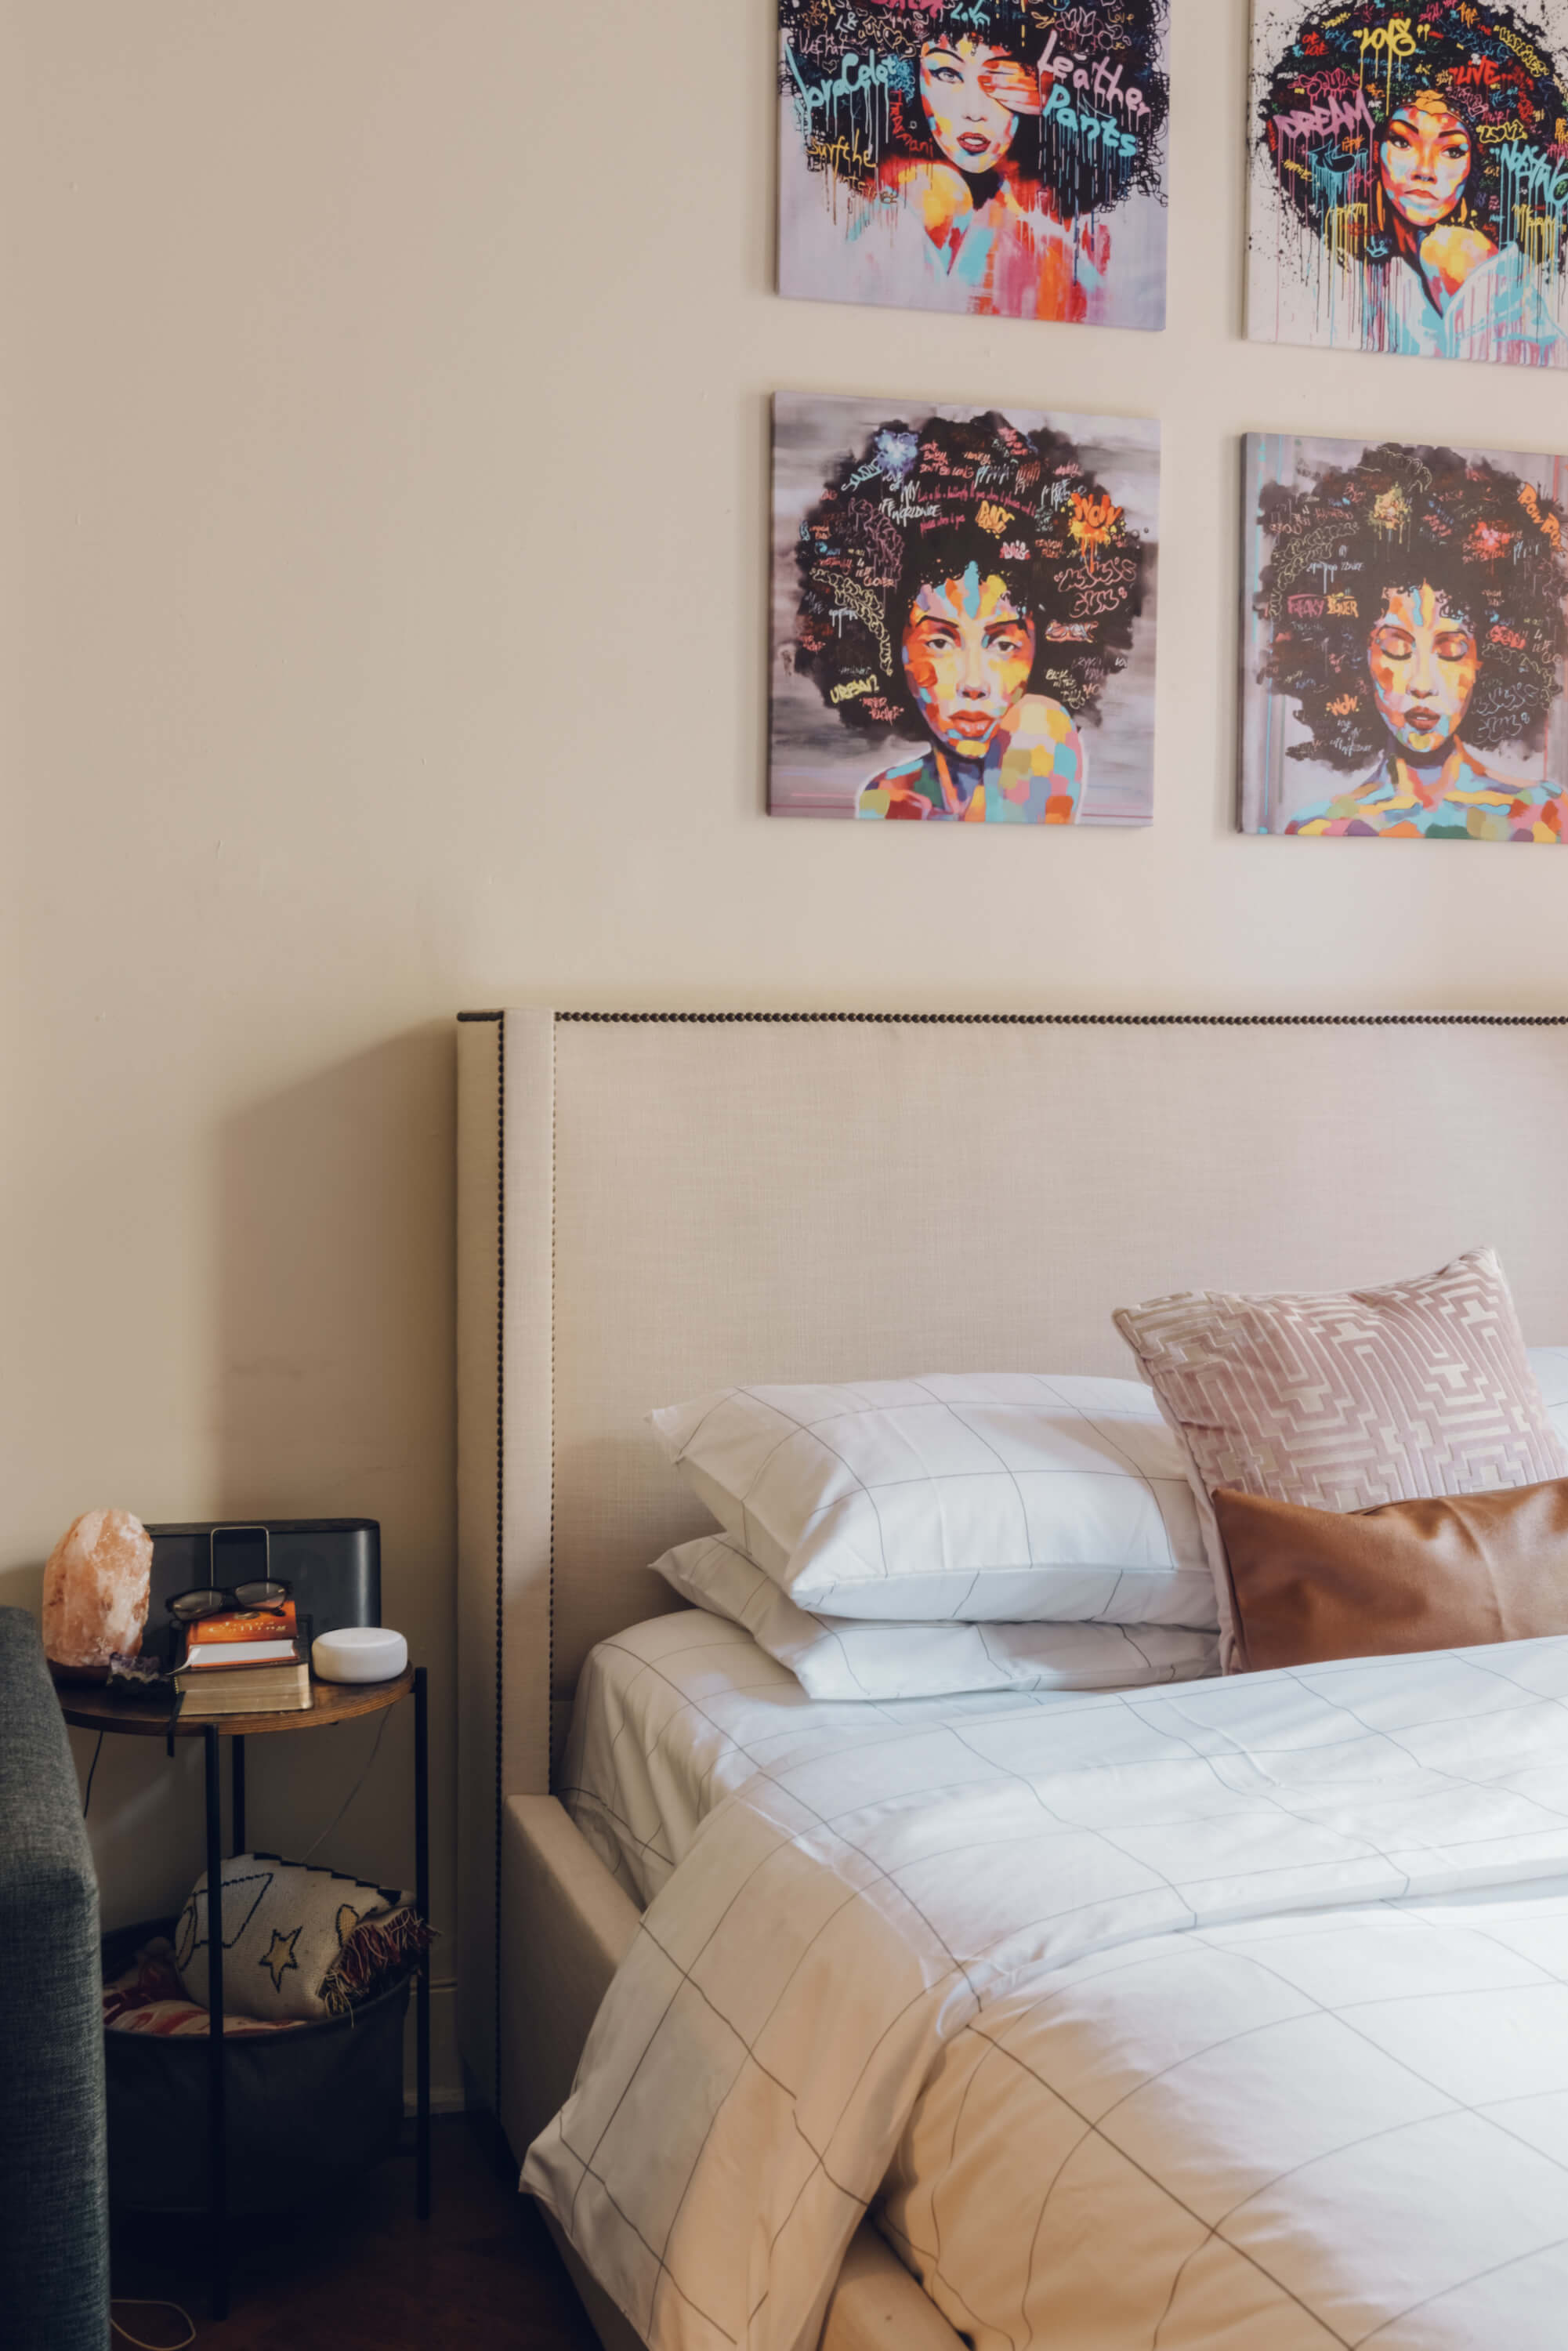 One Room Challenge | Brooklyn, NY Studio Apartment Design by Albie Knows | Photography by Mariah Texidor